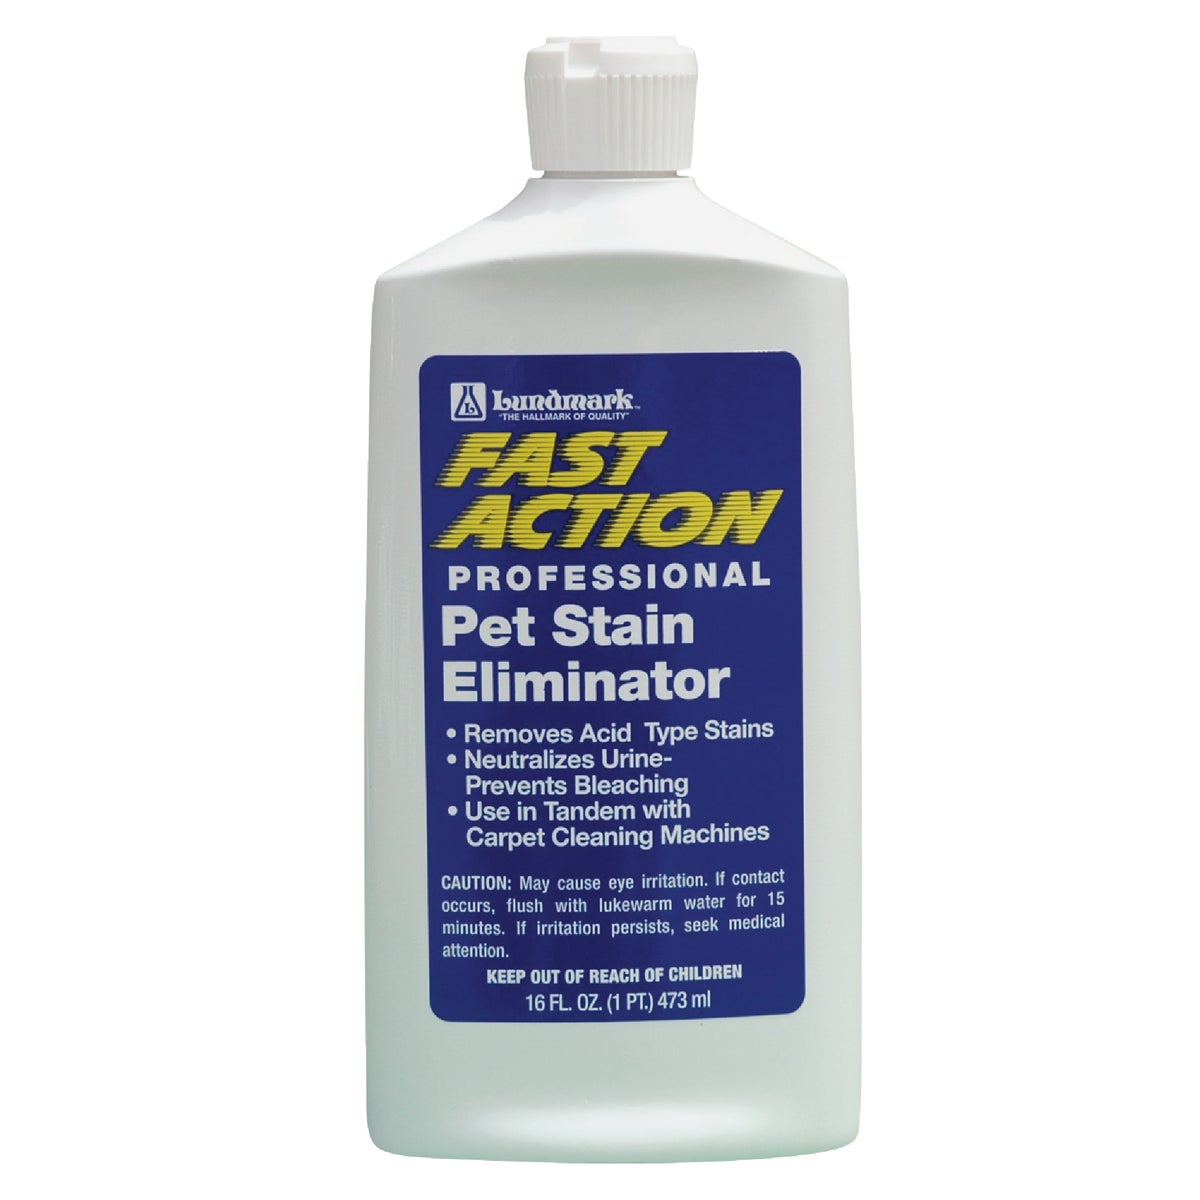 16OZ PET STAIN REMOVER